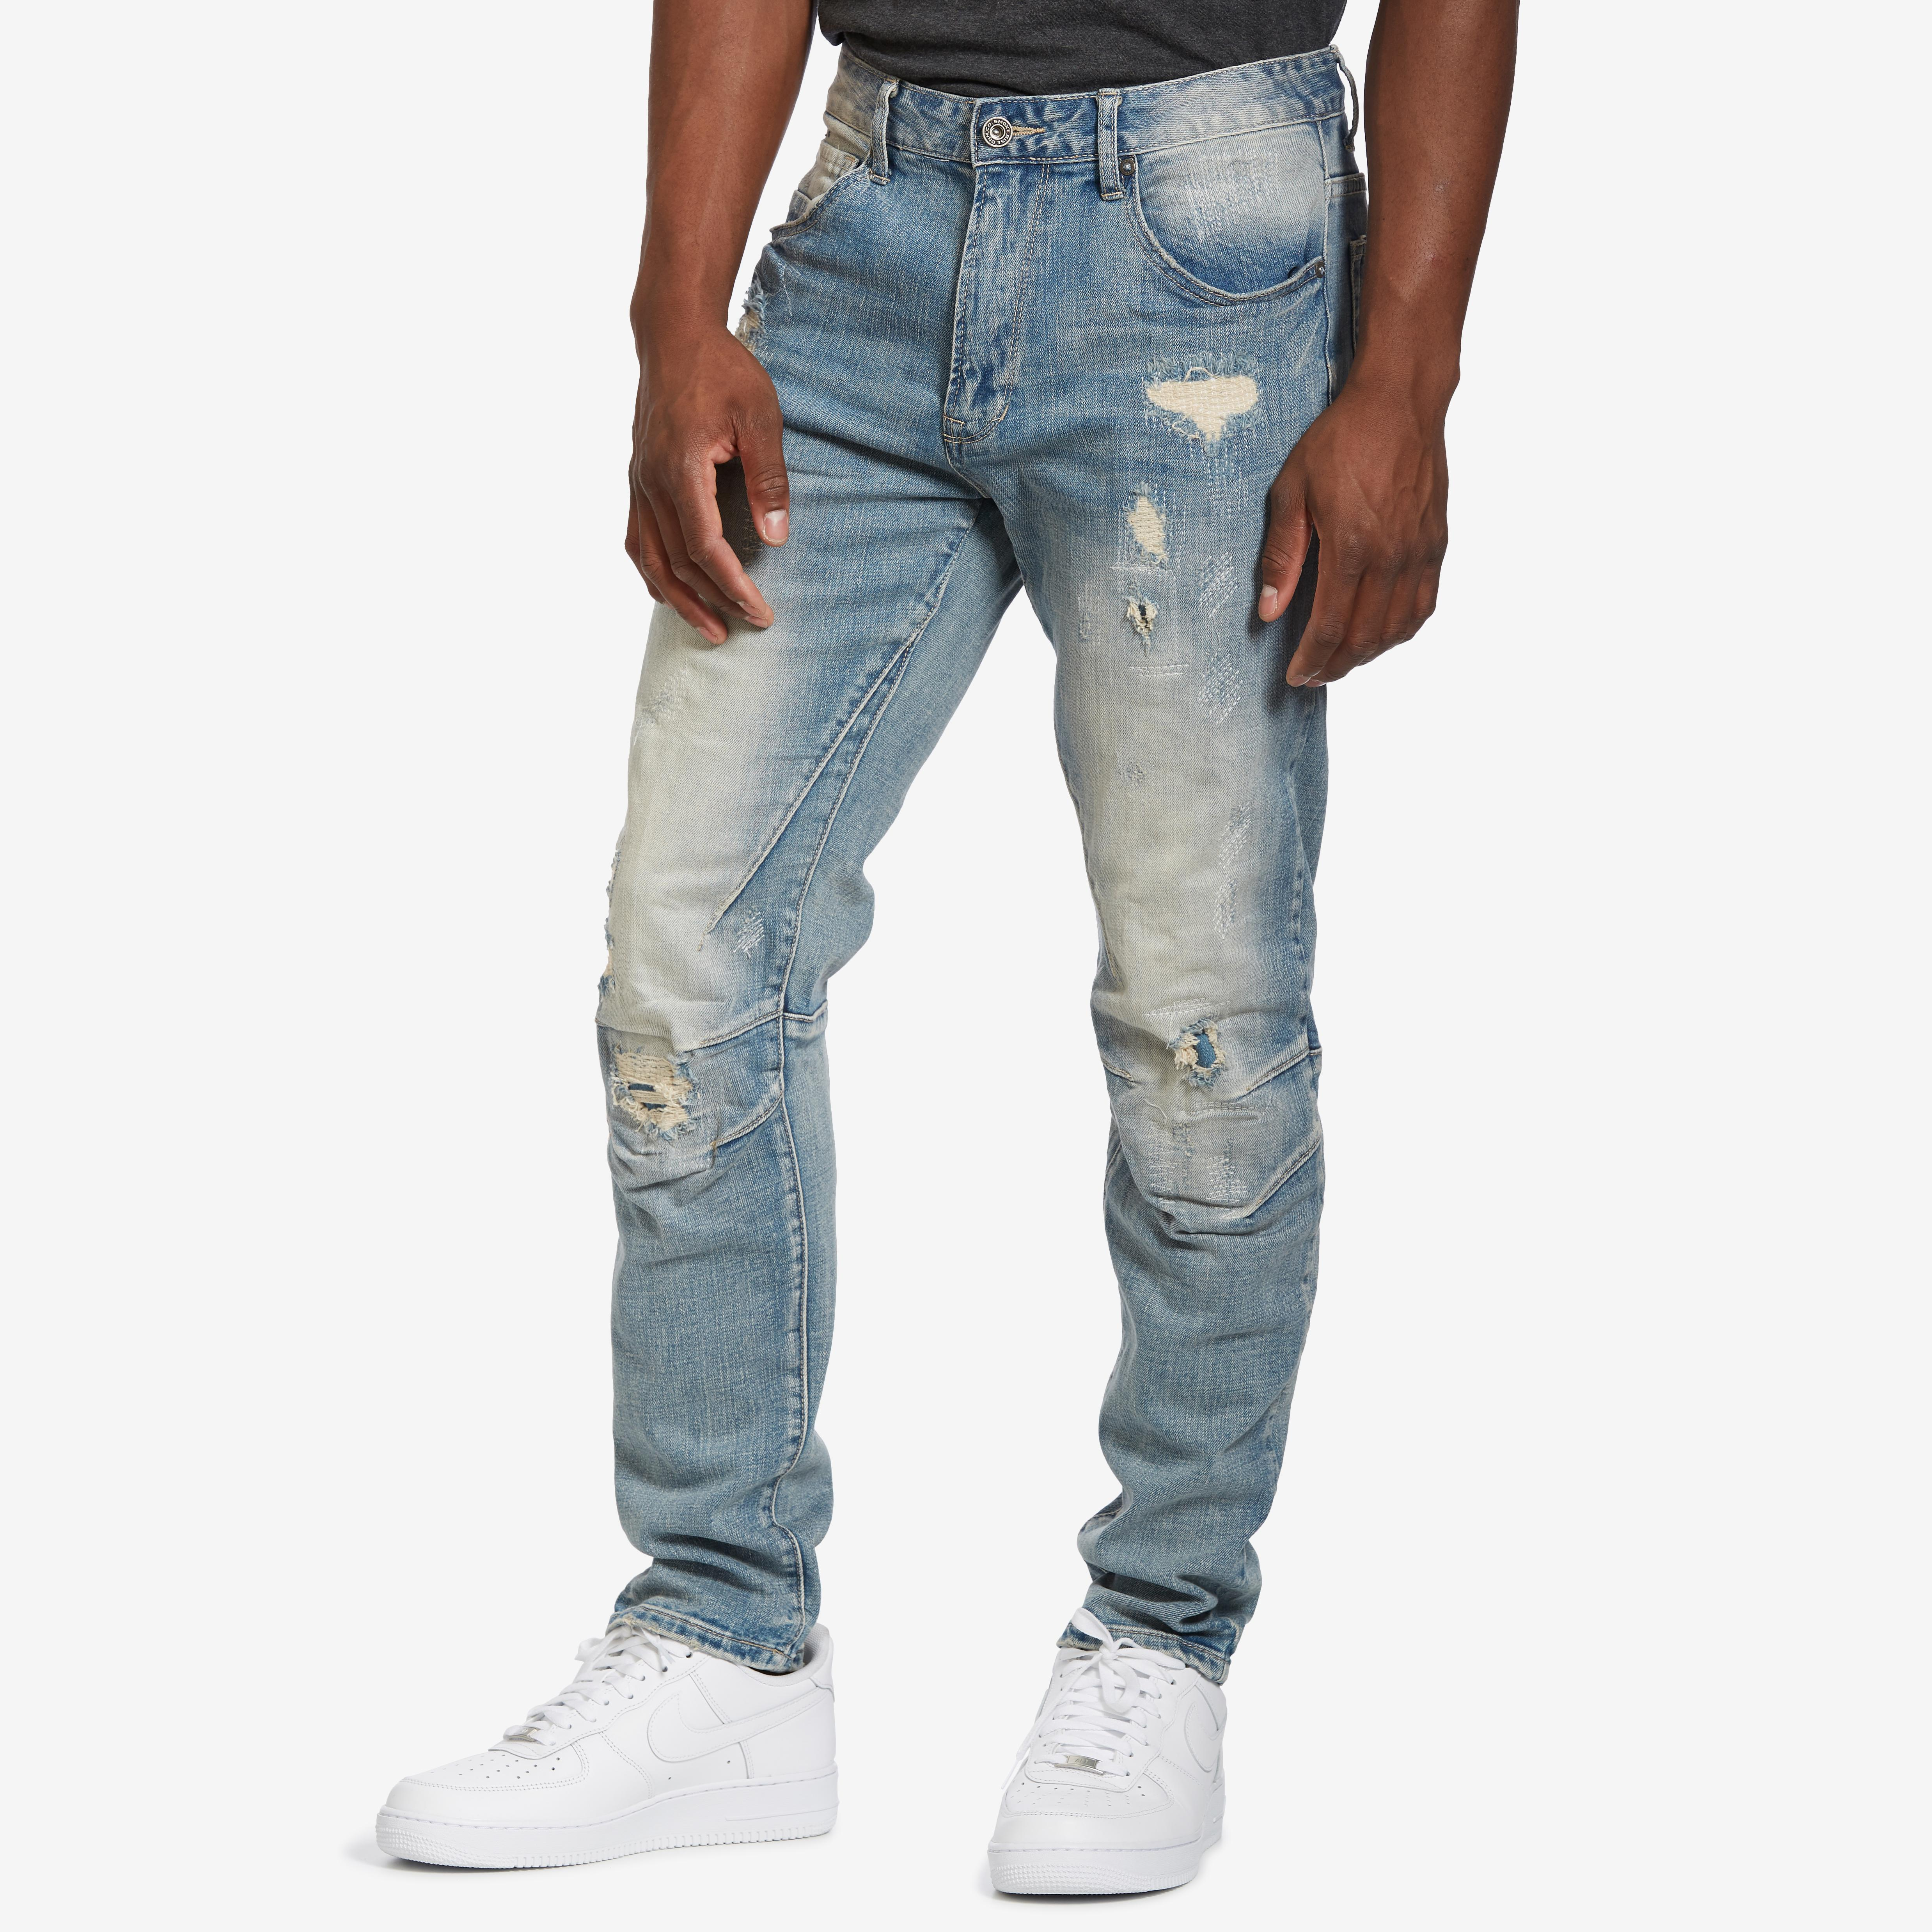 5 Pocket Ripped And Torn Relaxed Tapered Jeans